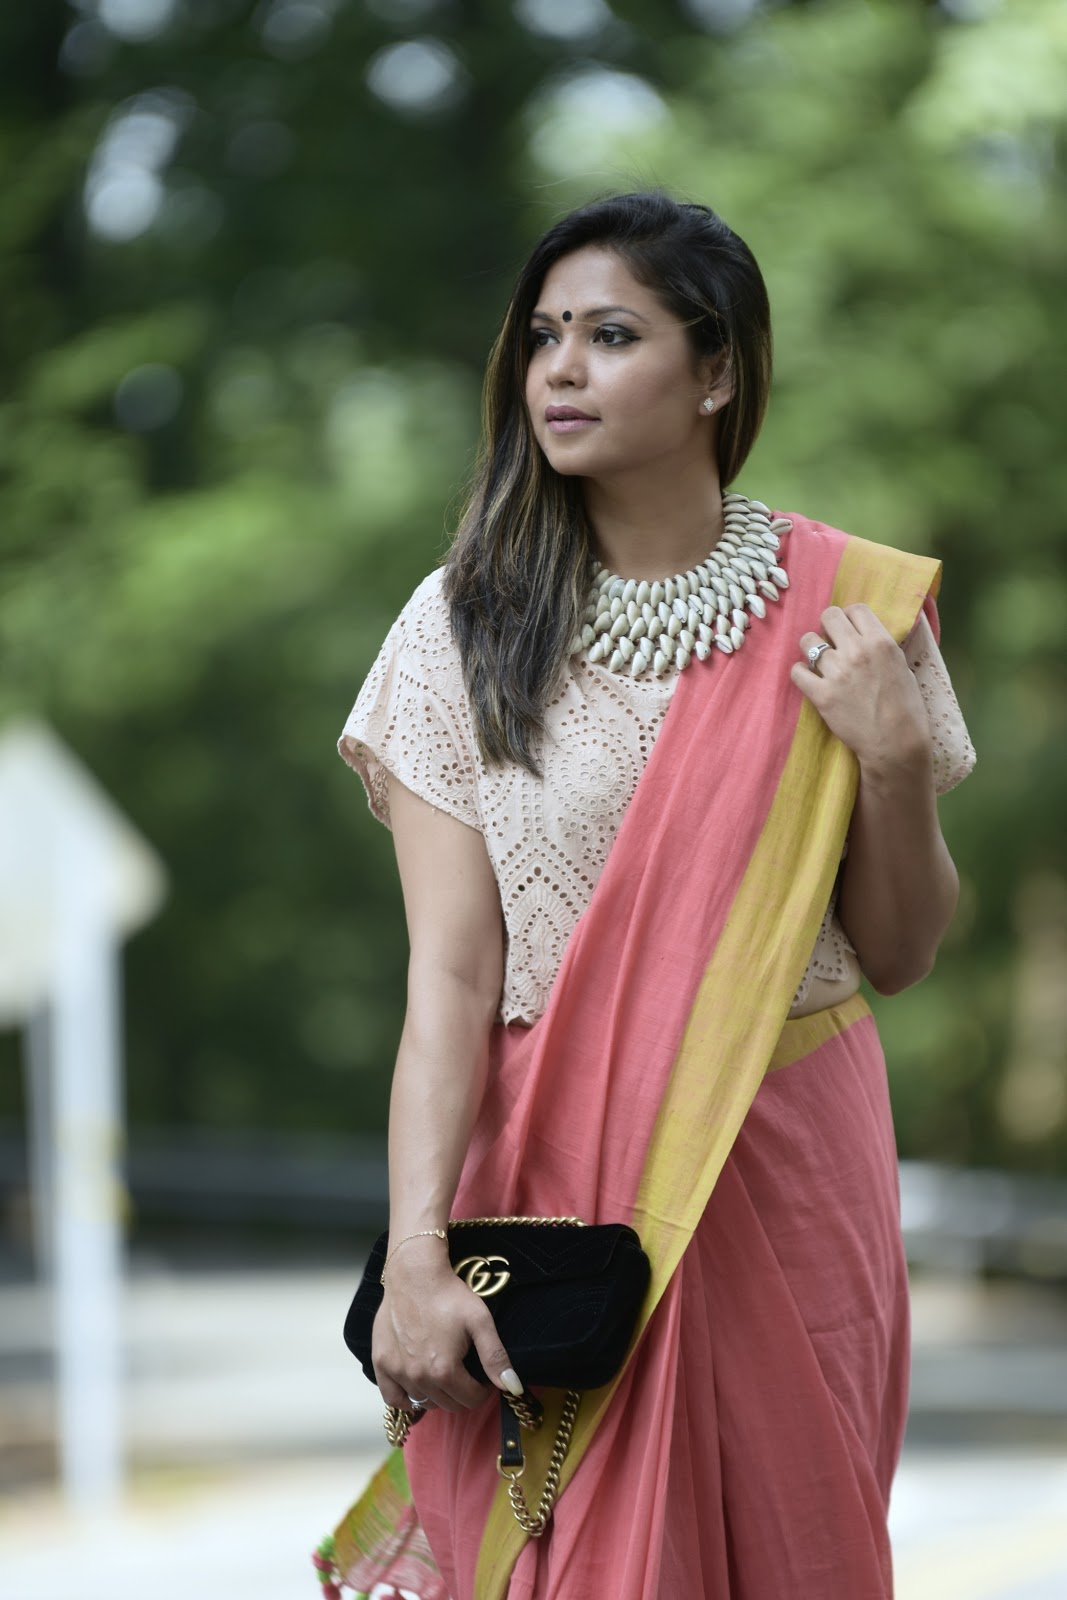 how to wear sari, indian , khadi, cotton love, fashion, style , fusion wear, indian blogger, street style, statement necklace, myriad musings